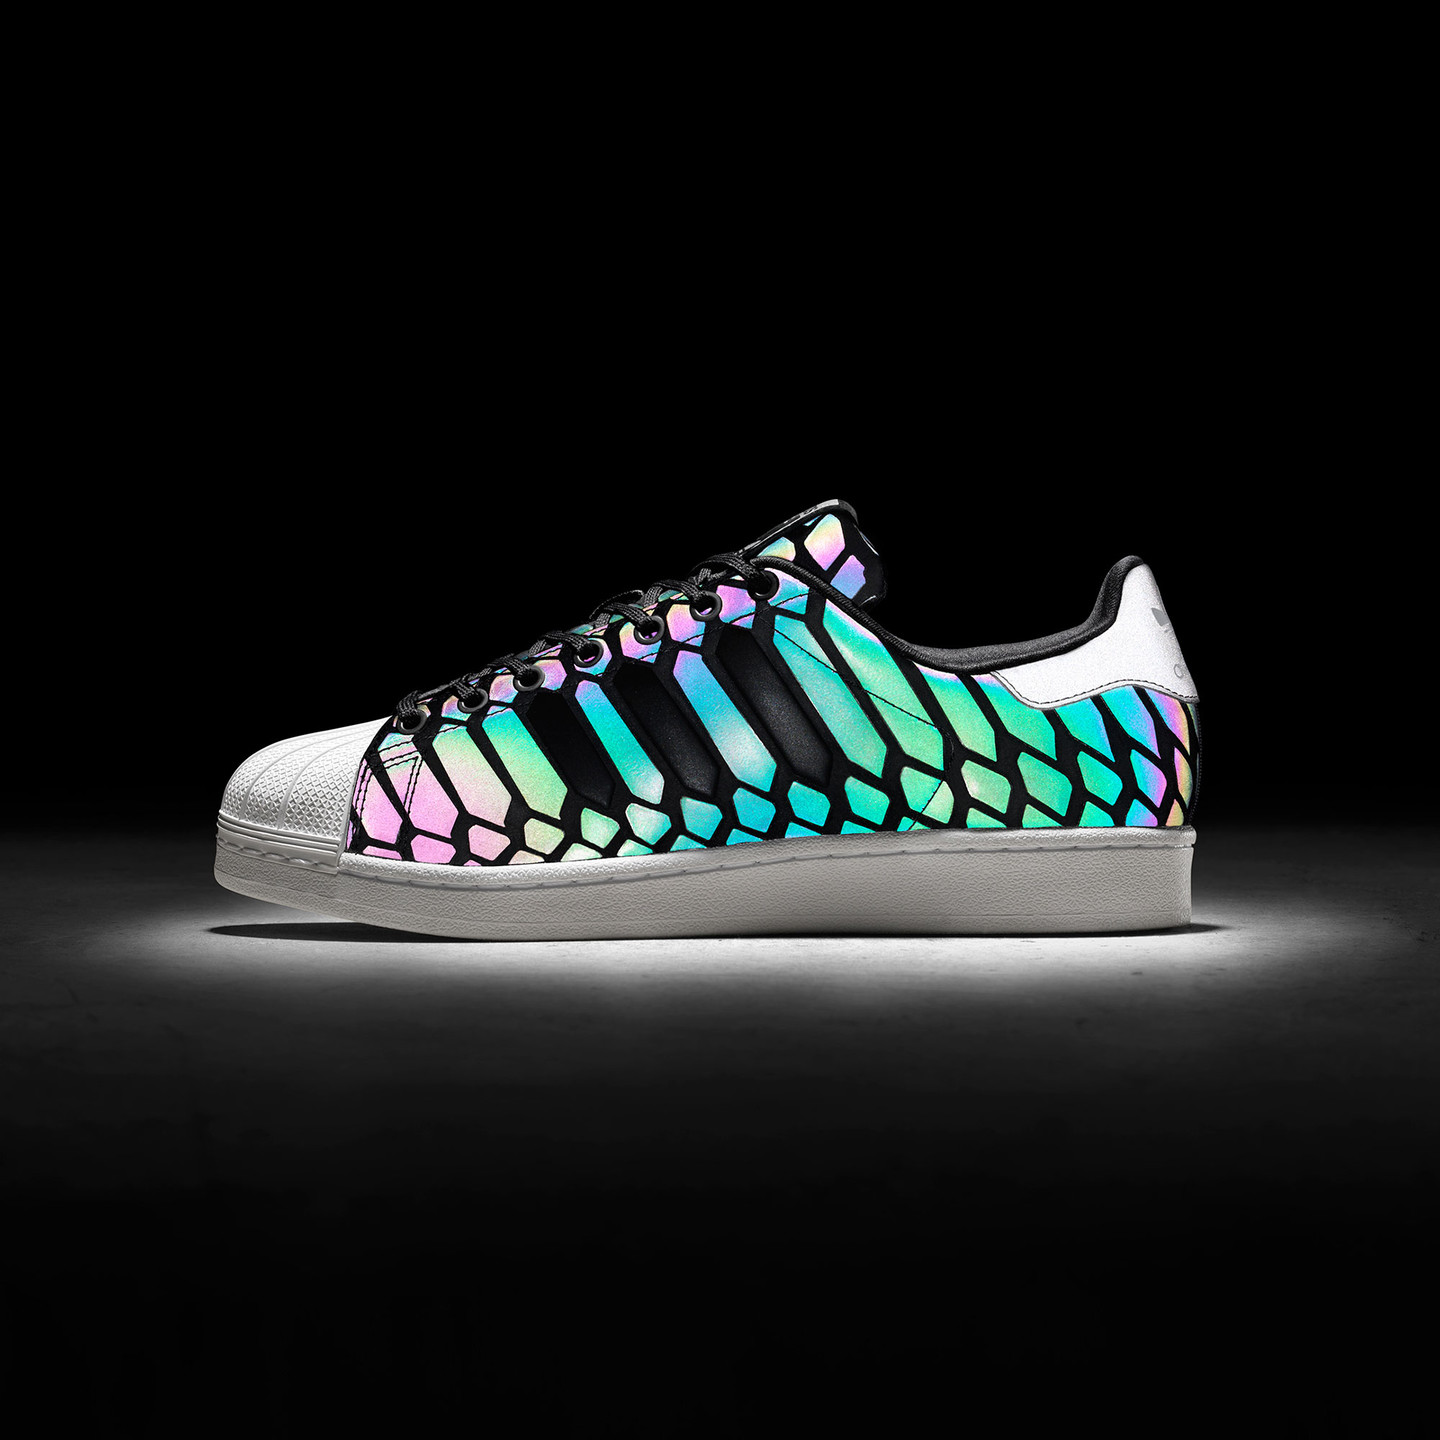 Adidas Superstar Xeno Pack Cblack / Supcol / Ftwwht D69366-41.33